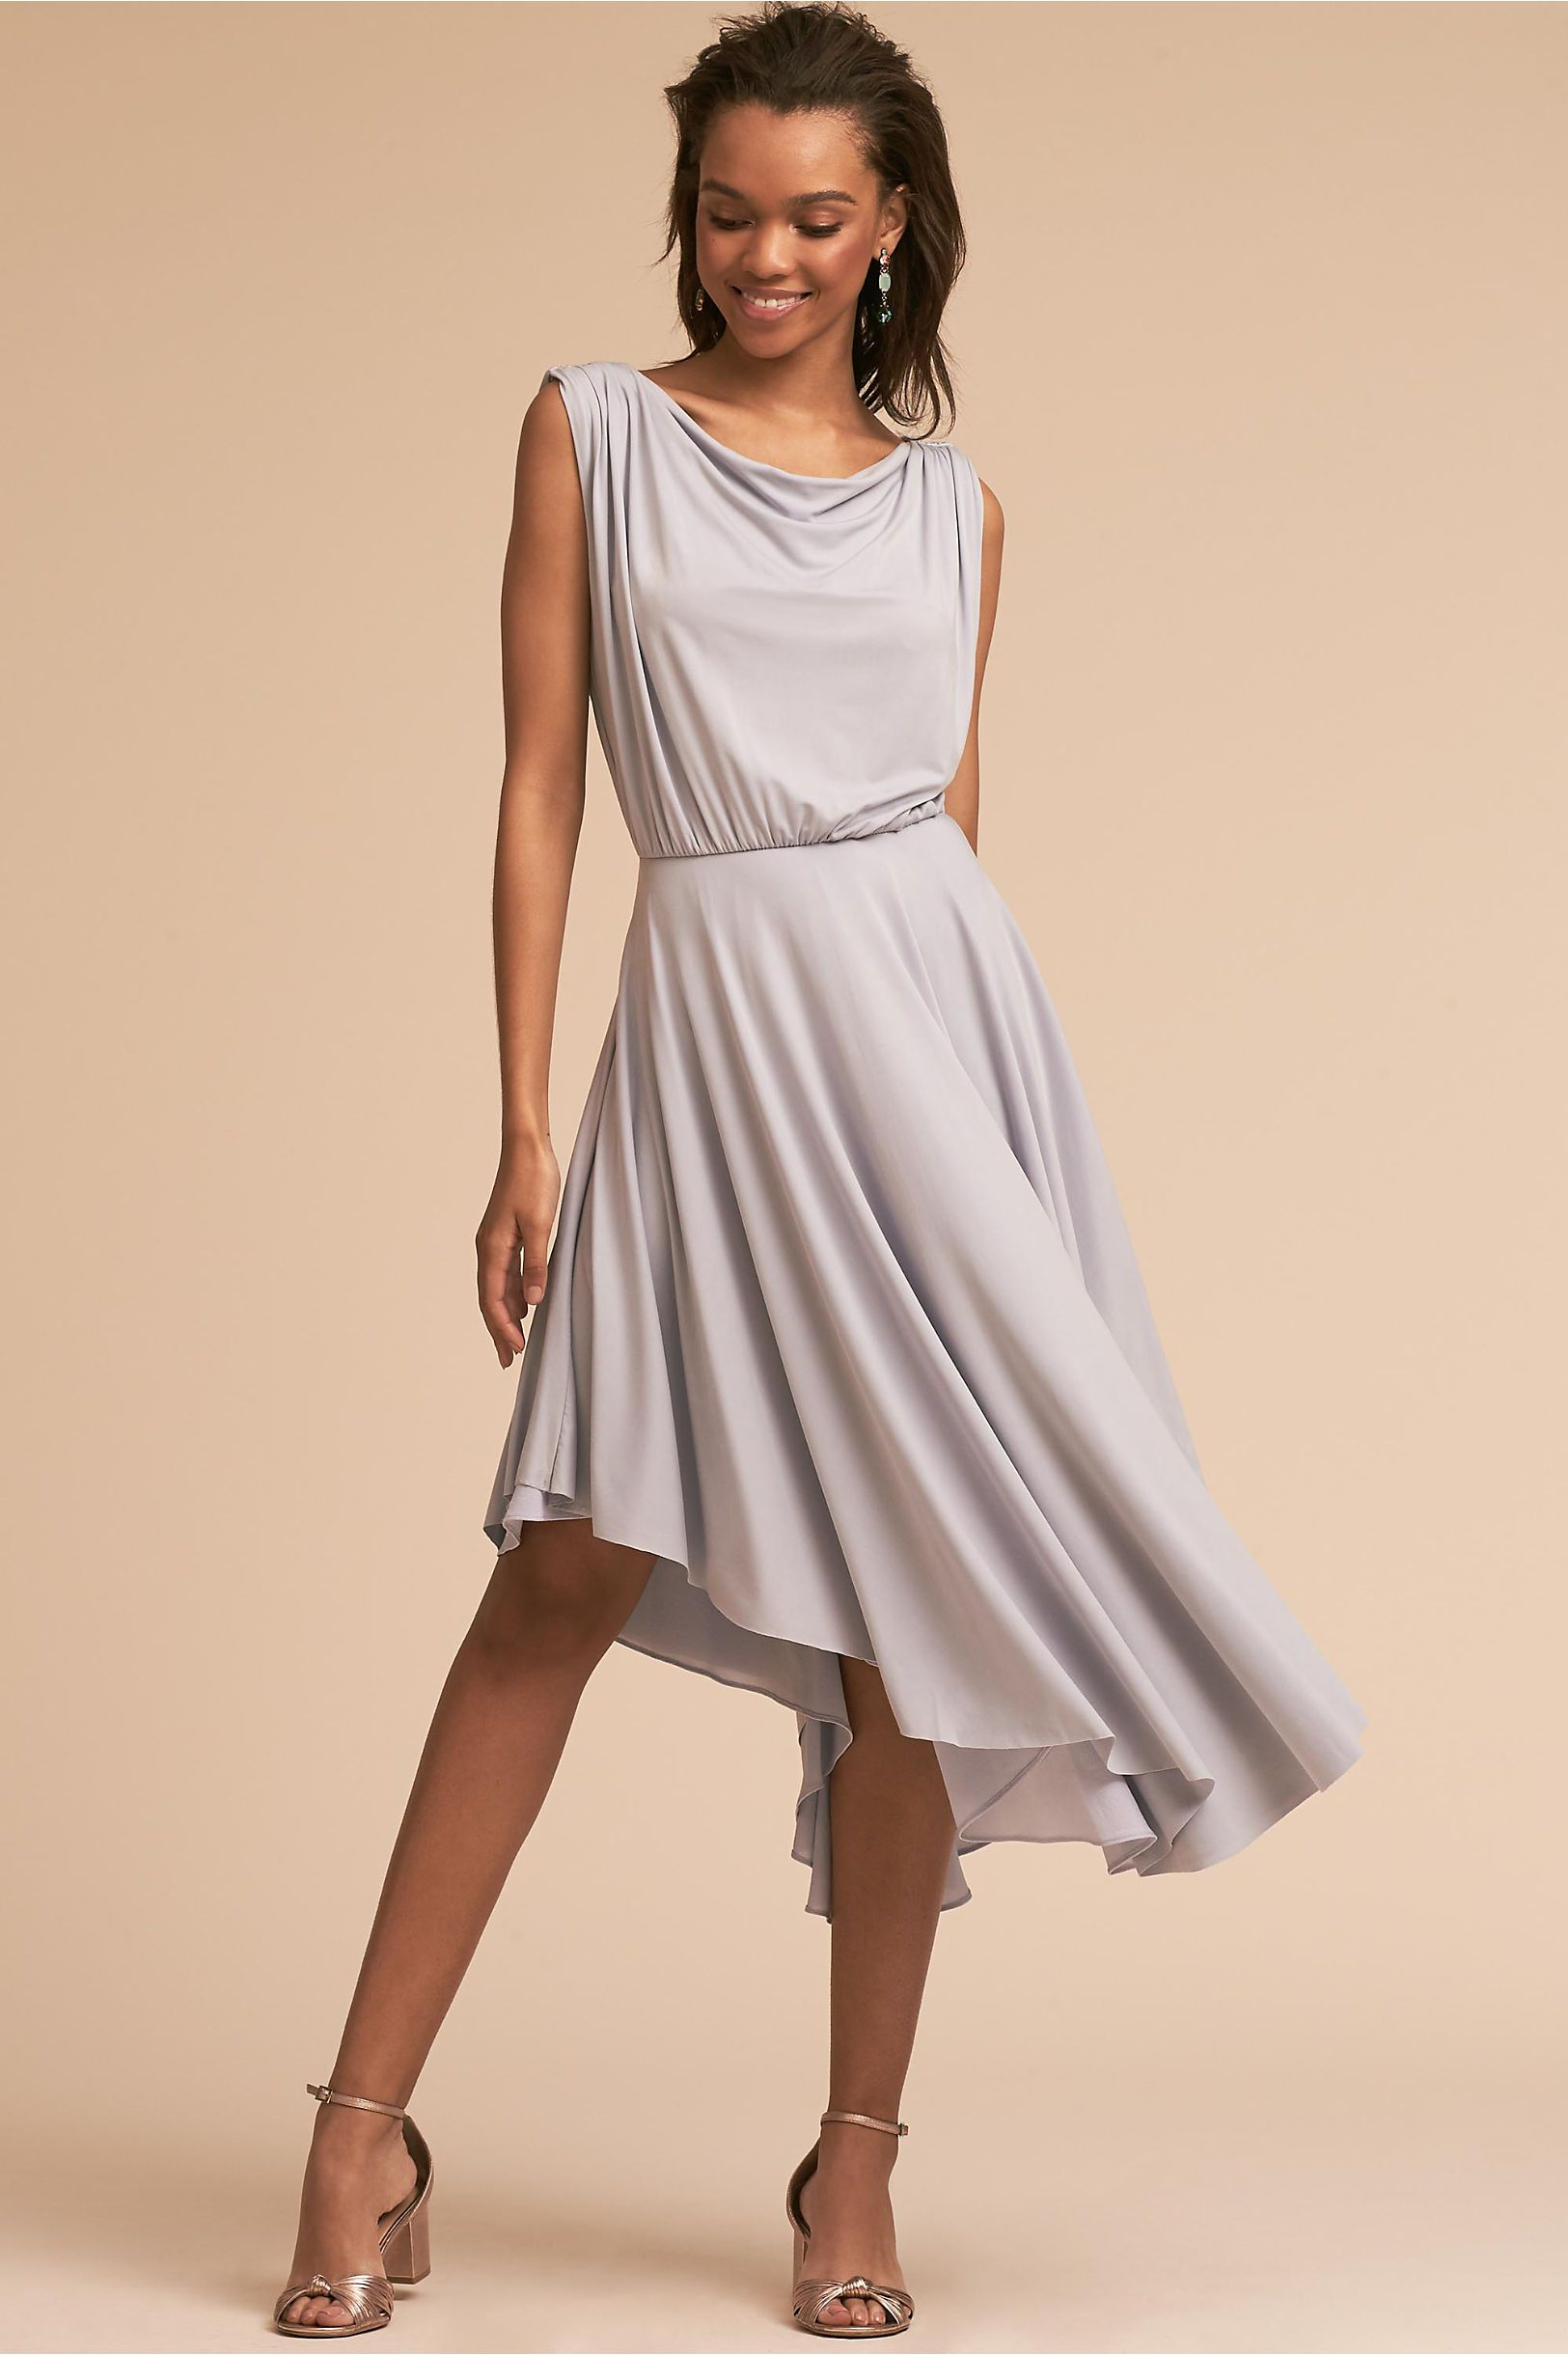 Bhldnus harmonia dress in light blue products pinterest